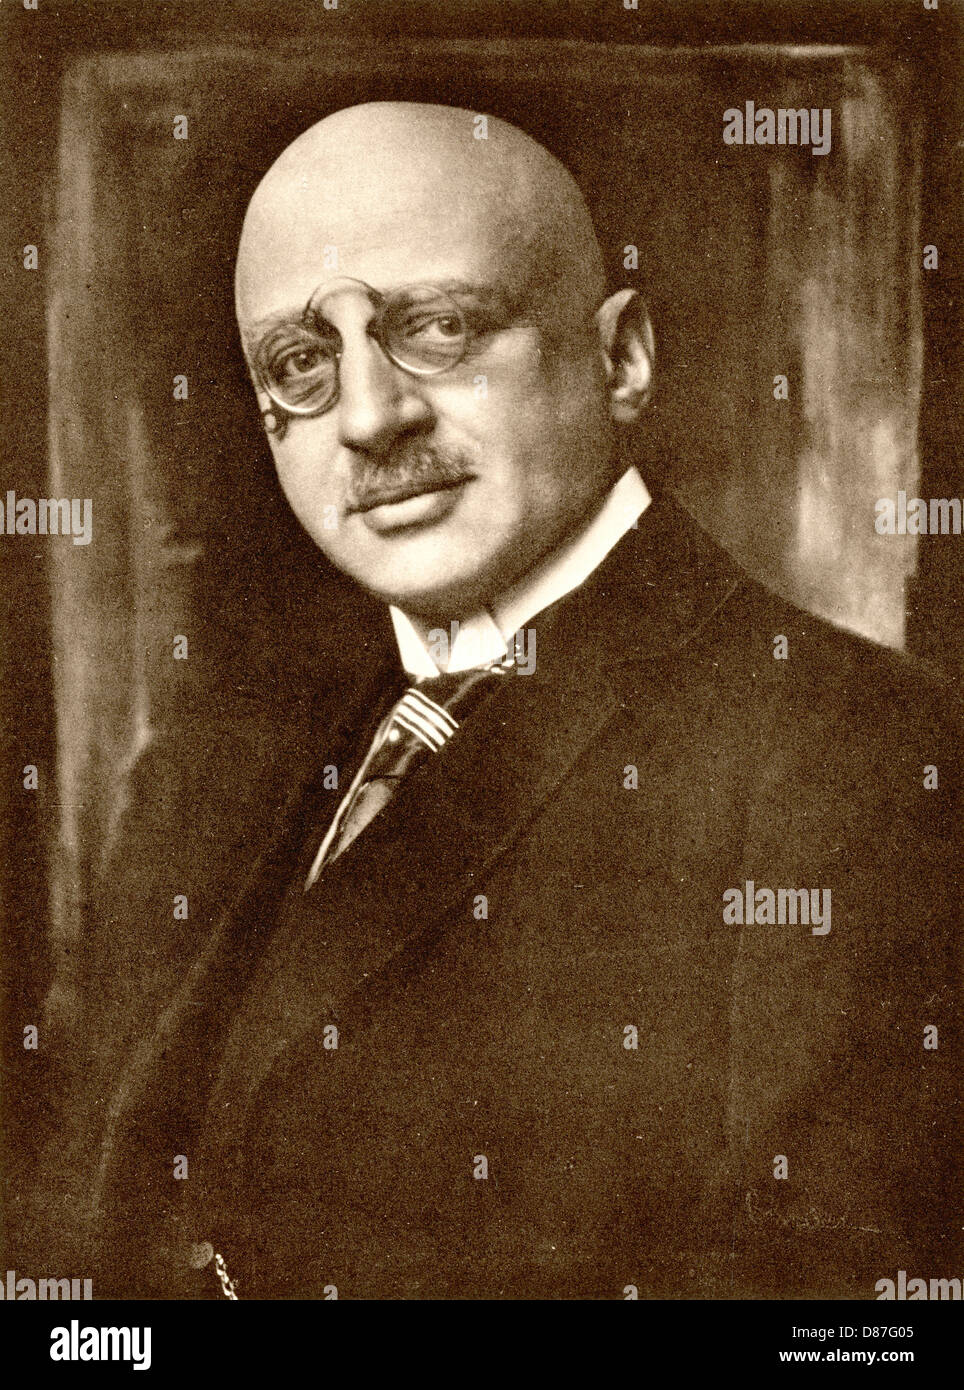 pince nez stock photos pince nez stock images alamy fritz haber nobel 1918 stock image